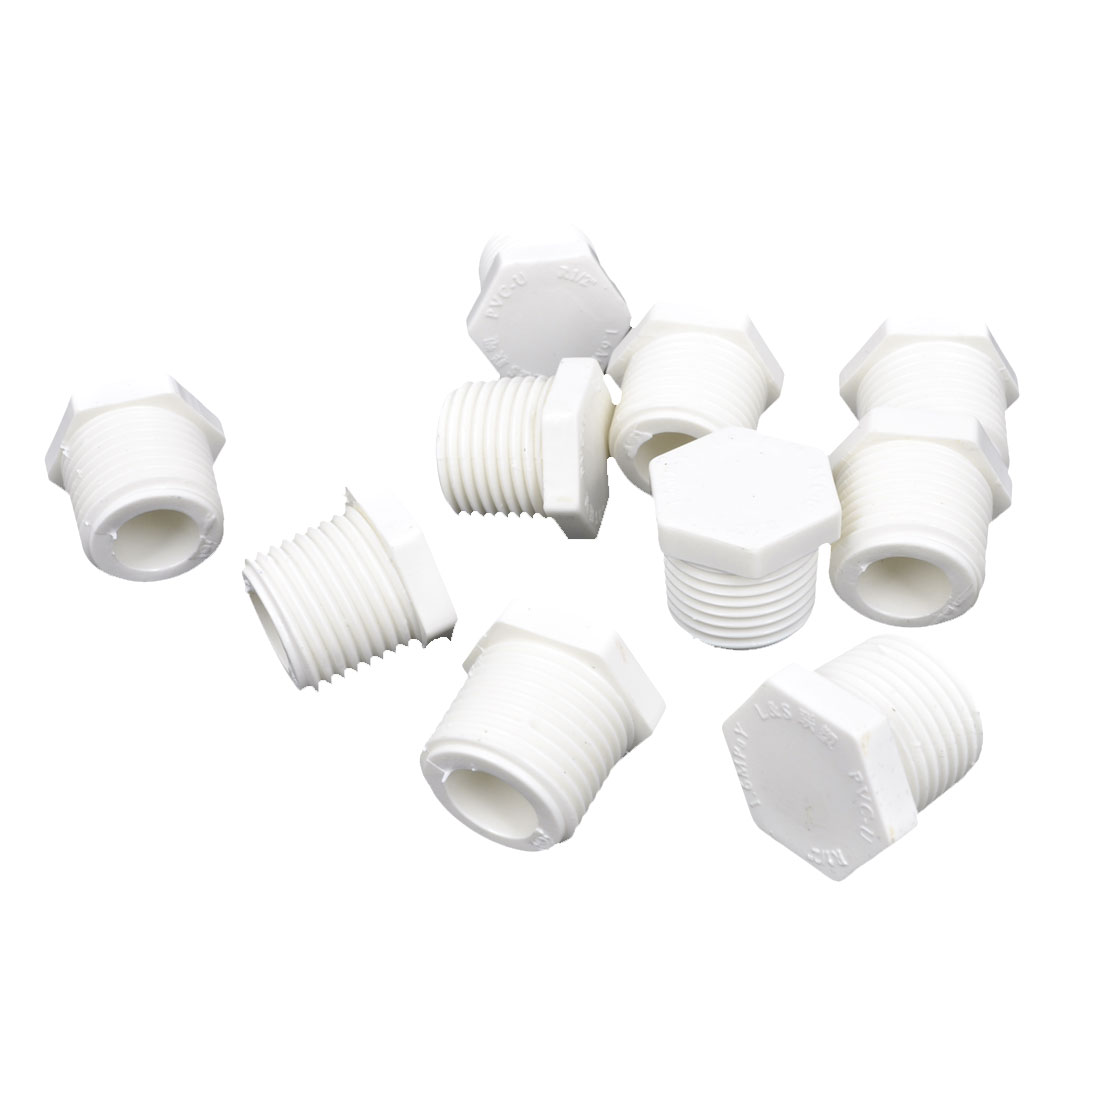 10 Pcs 1/2 PT Thread White Plastic Hex Head Screwed Pipe Fitting for Water Pipeline